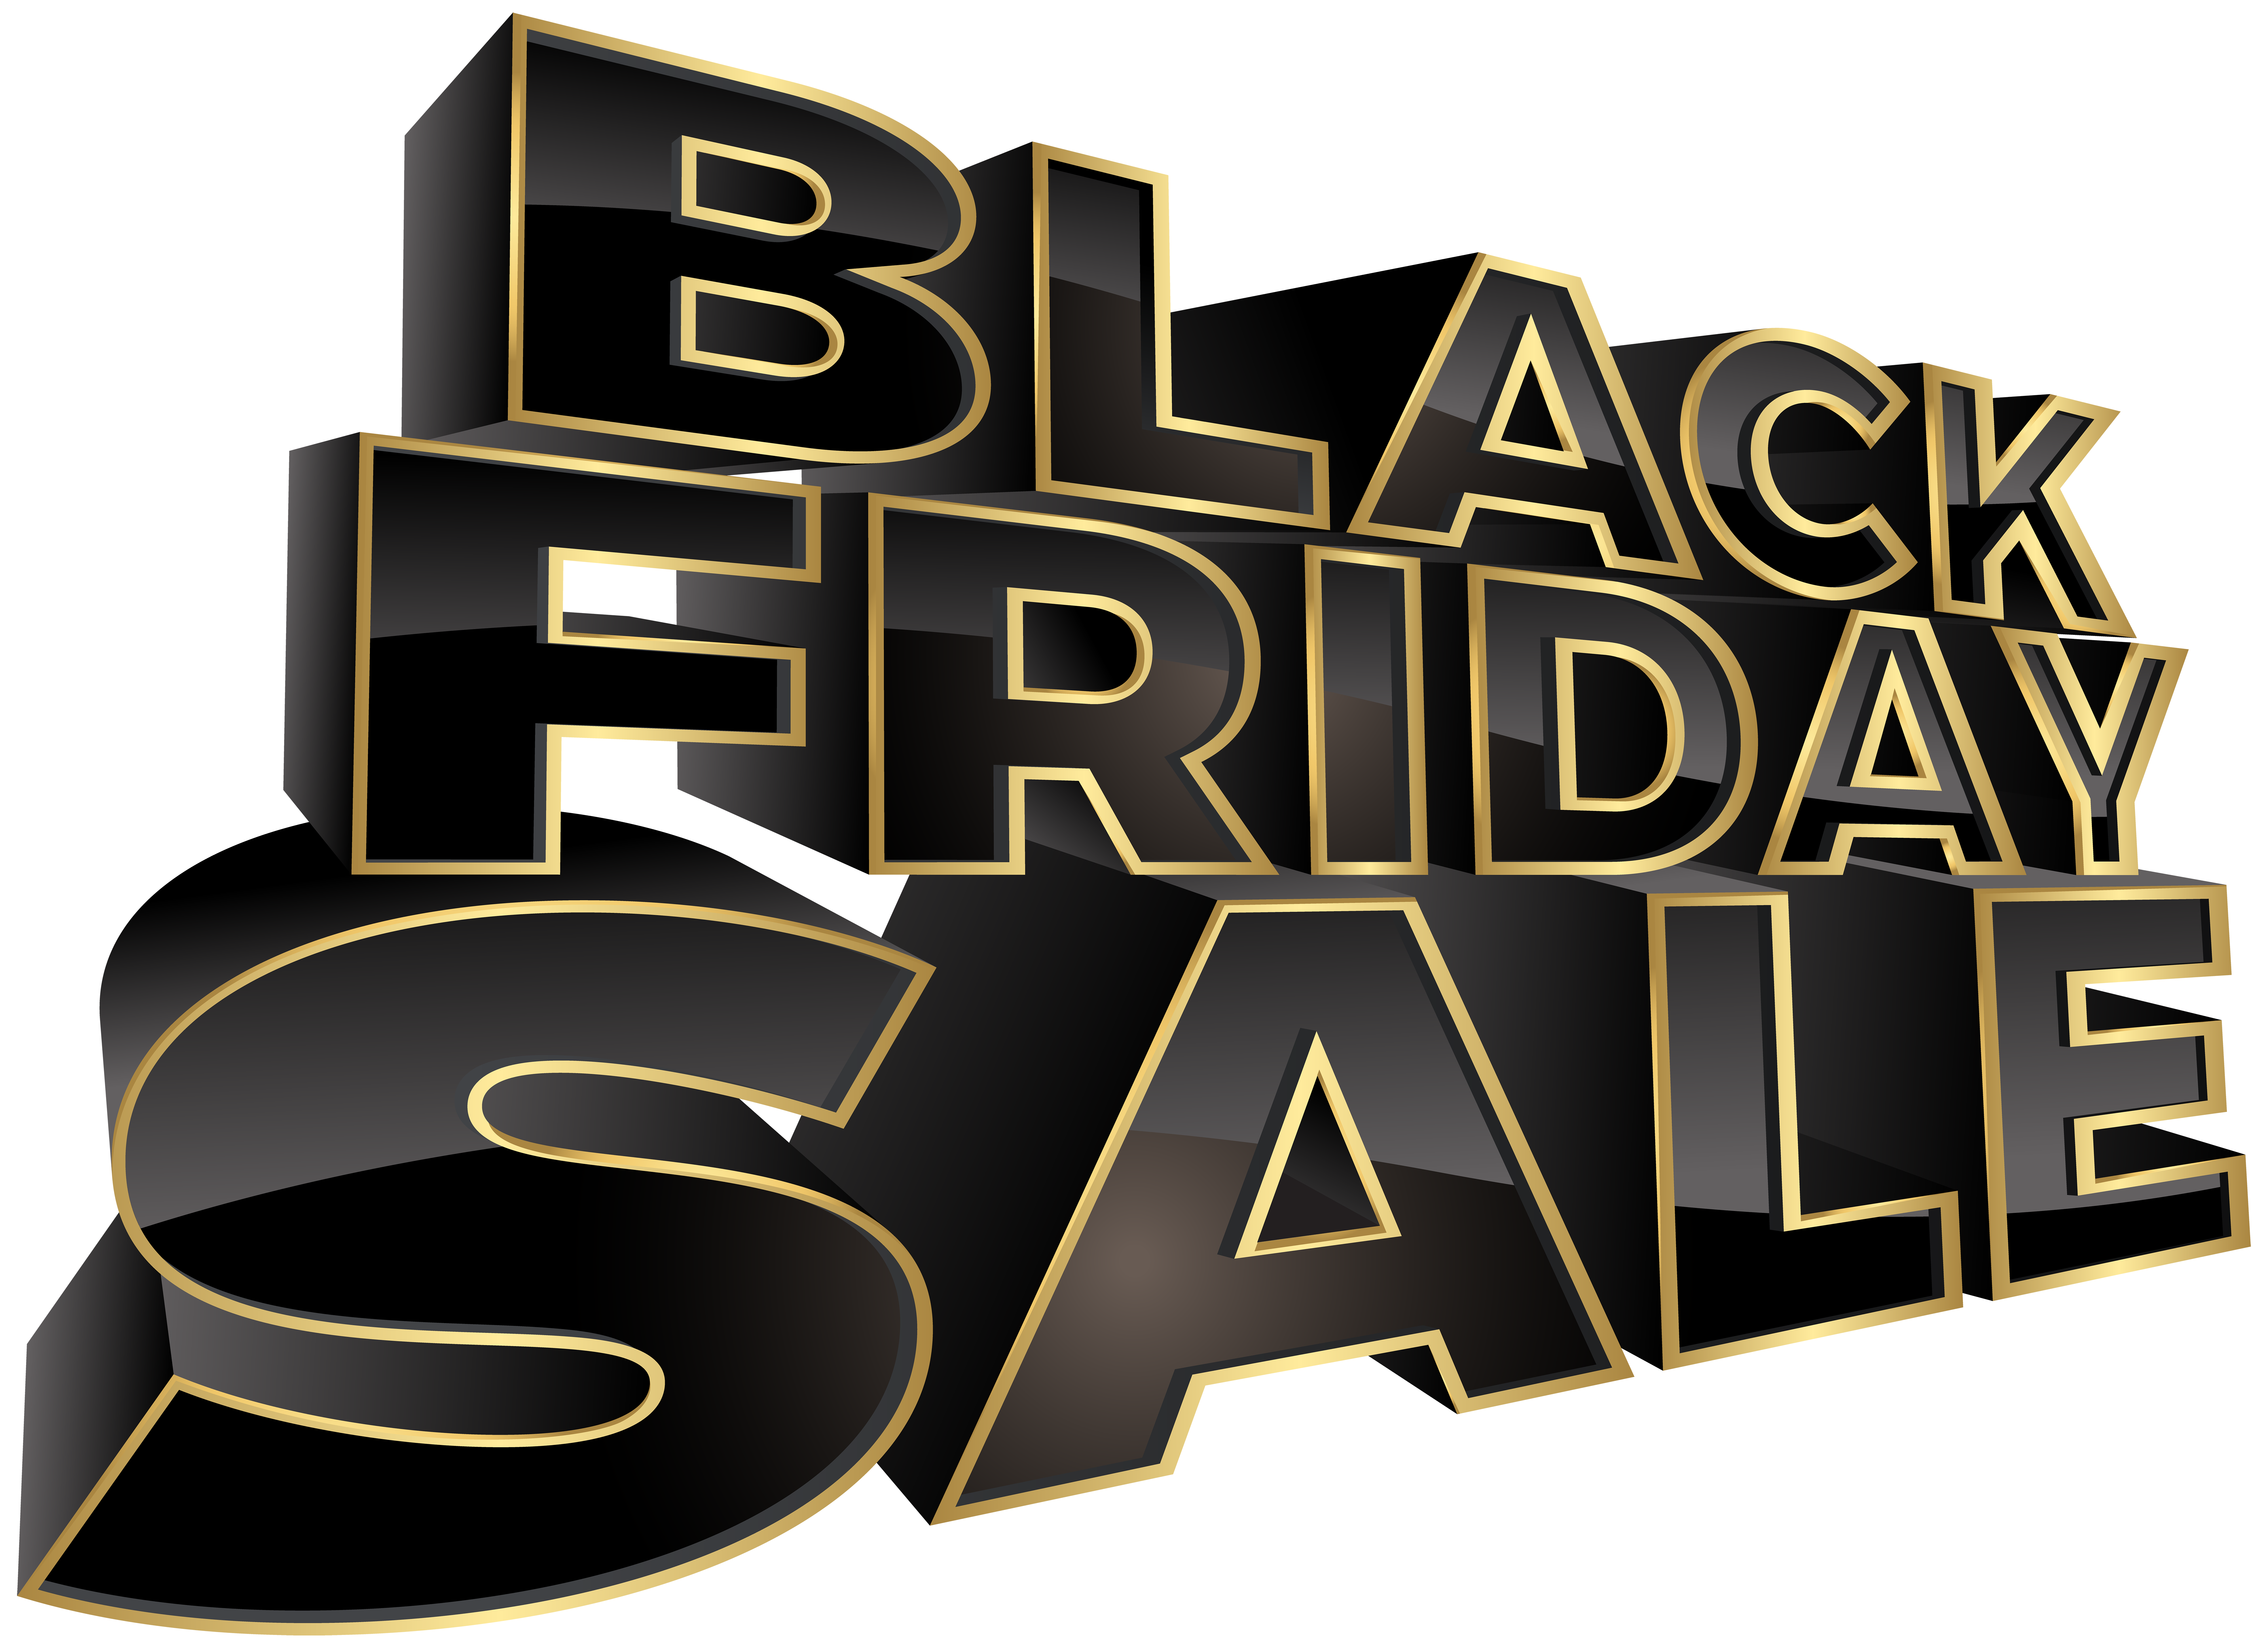 Black friday sale png. Clip art image gallery